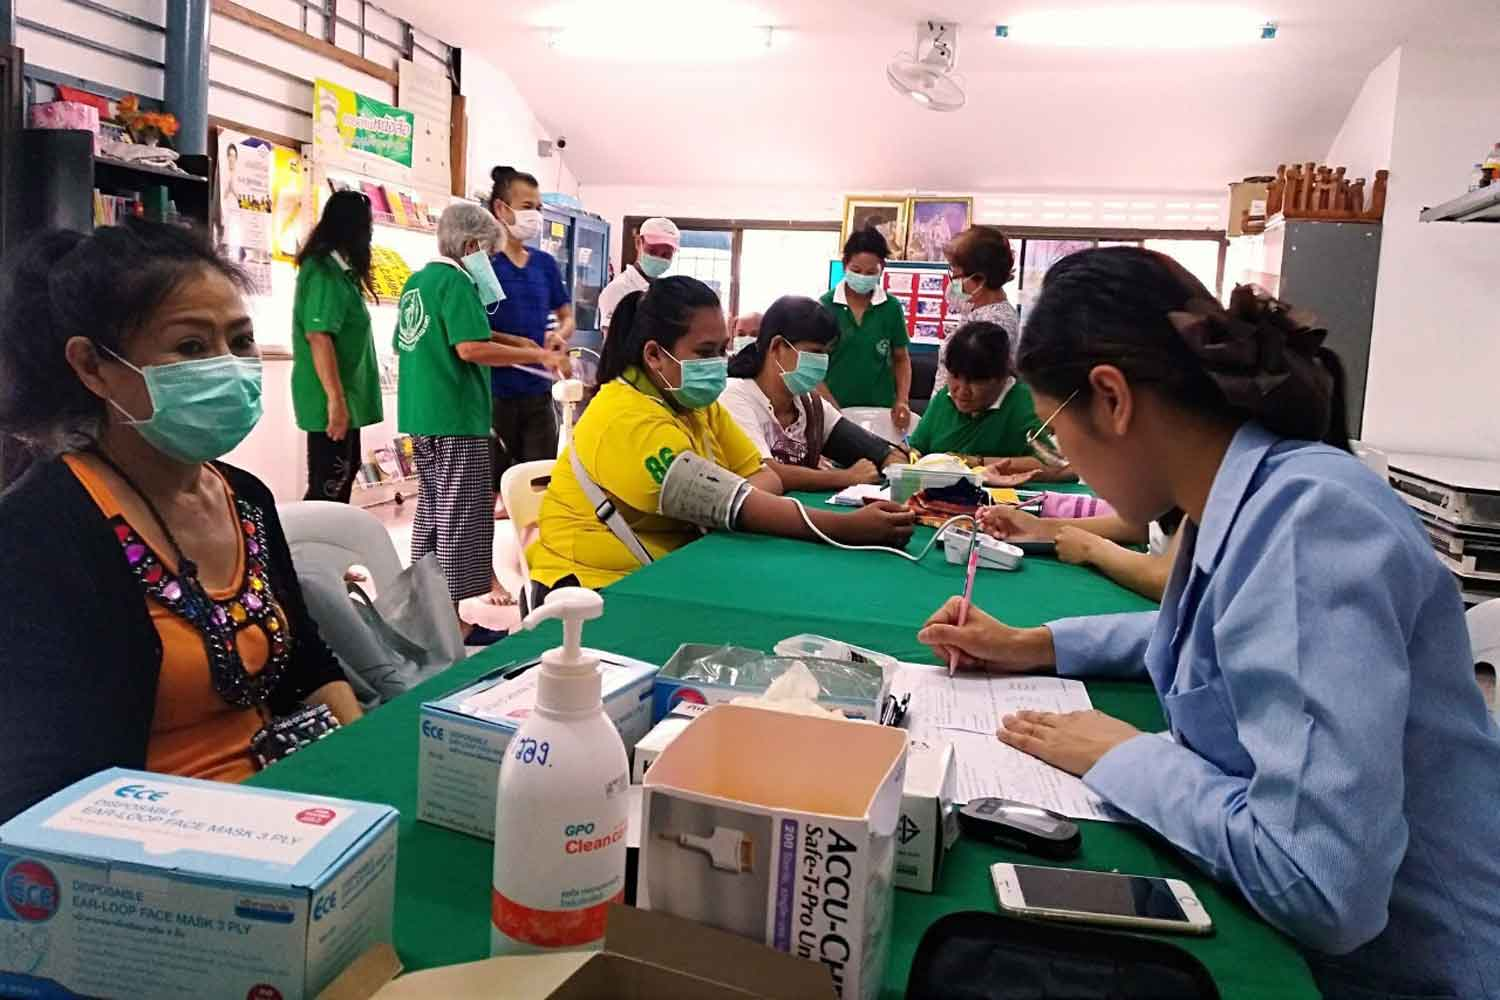 Staff from the Bangkok Metropolitan Administration offer checkups to people affected by smog at Ratchathani community on Lat Phrao 101 Road on Tuesday. (Photo supplied)